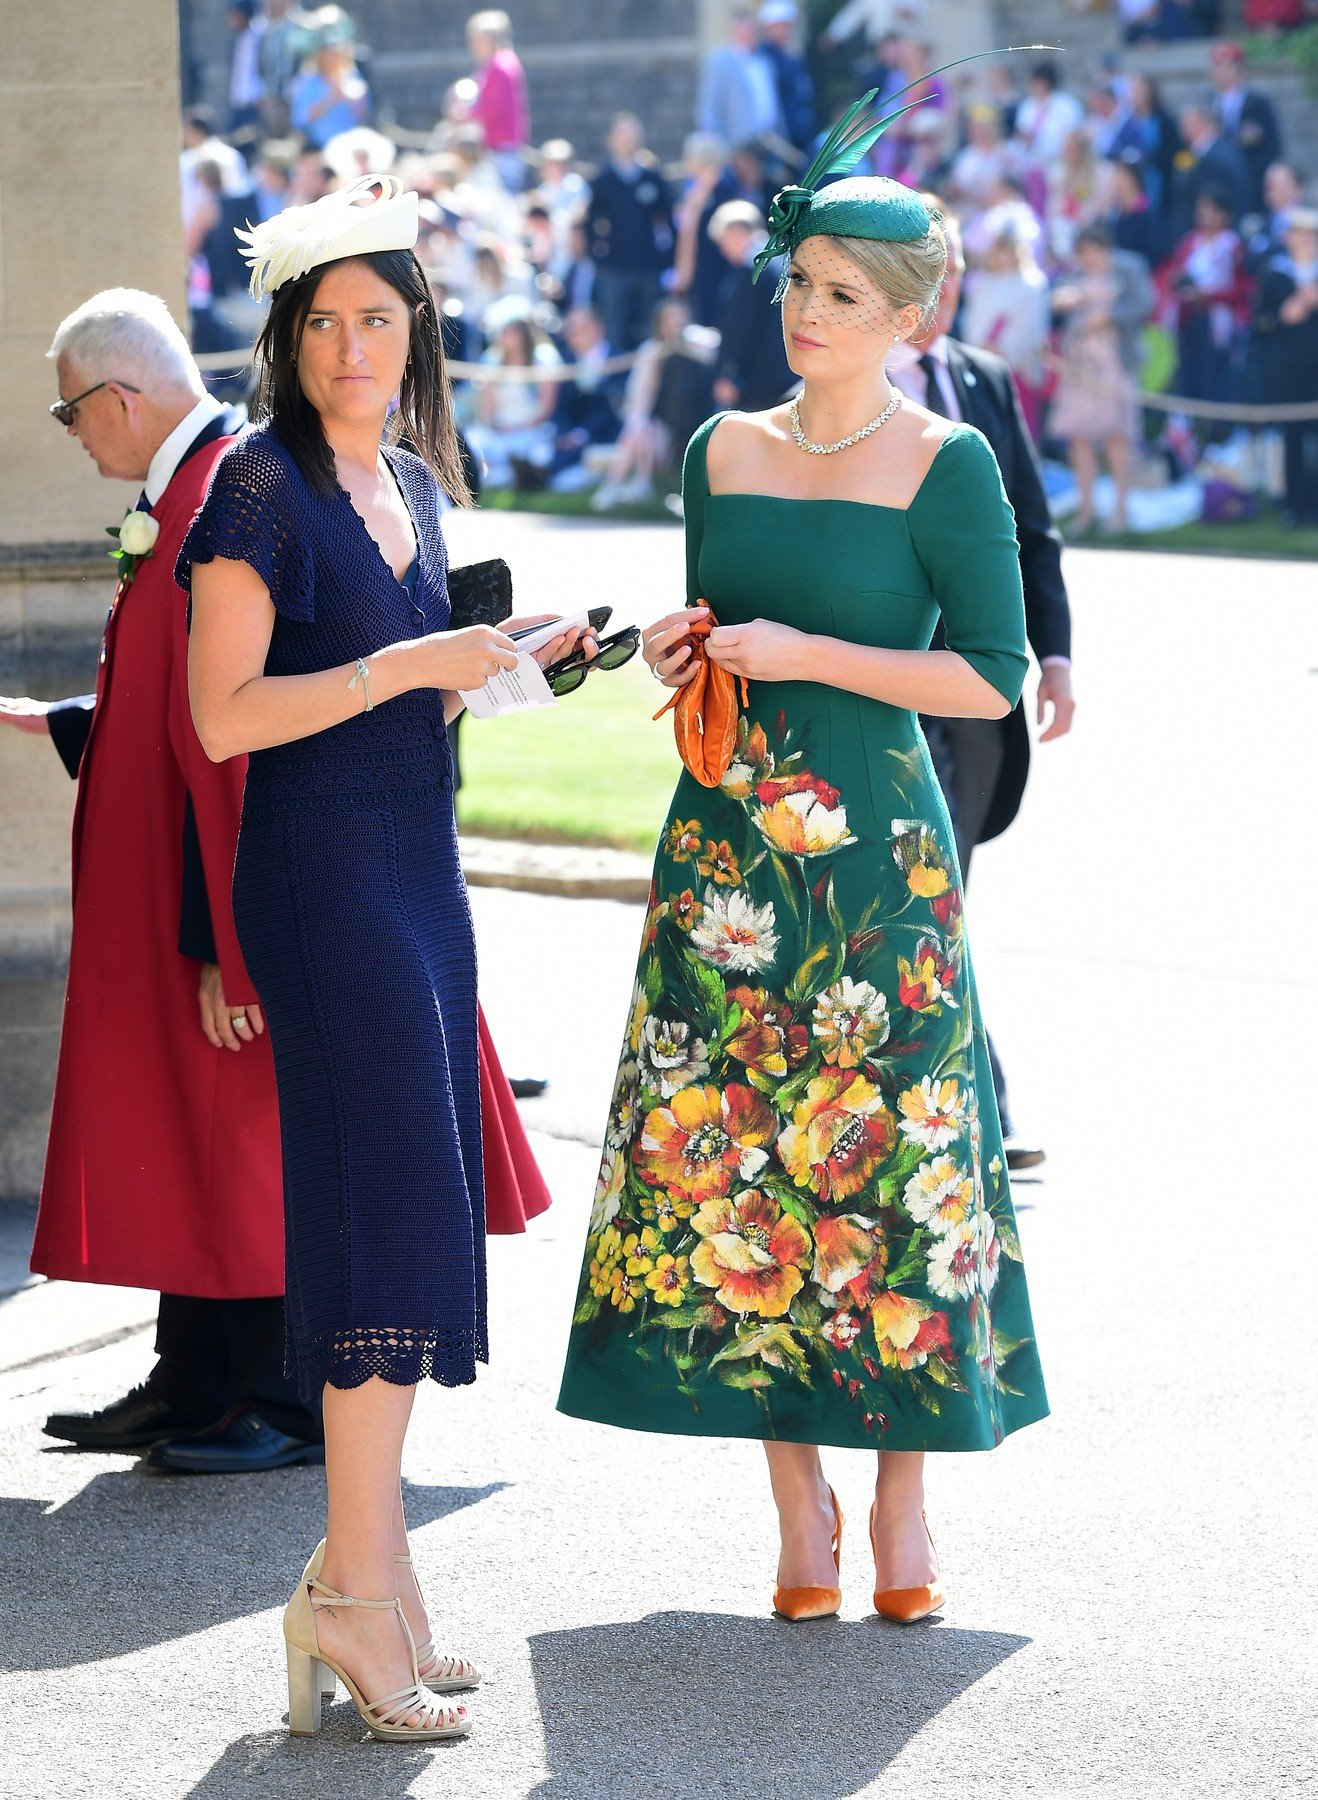 Lady Kitty Spencer (right) arrives at St George's Chapel at Windsor Castle for the wedding of Meghan Markle and Prince Harry., Image: 372242721, License: Rights-managed, Restrictions: , Model Release: no, Credit line: Profimedia, Press Association